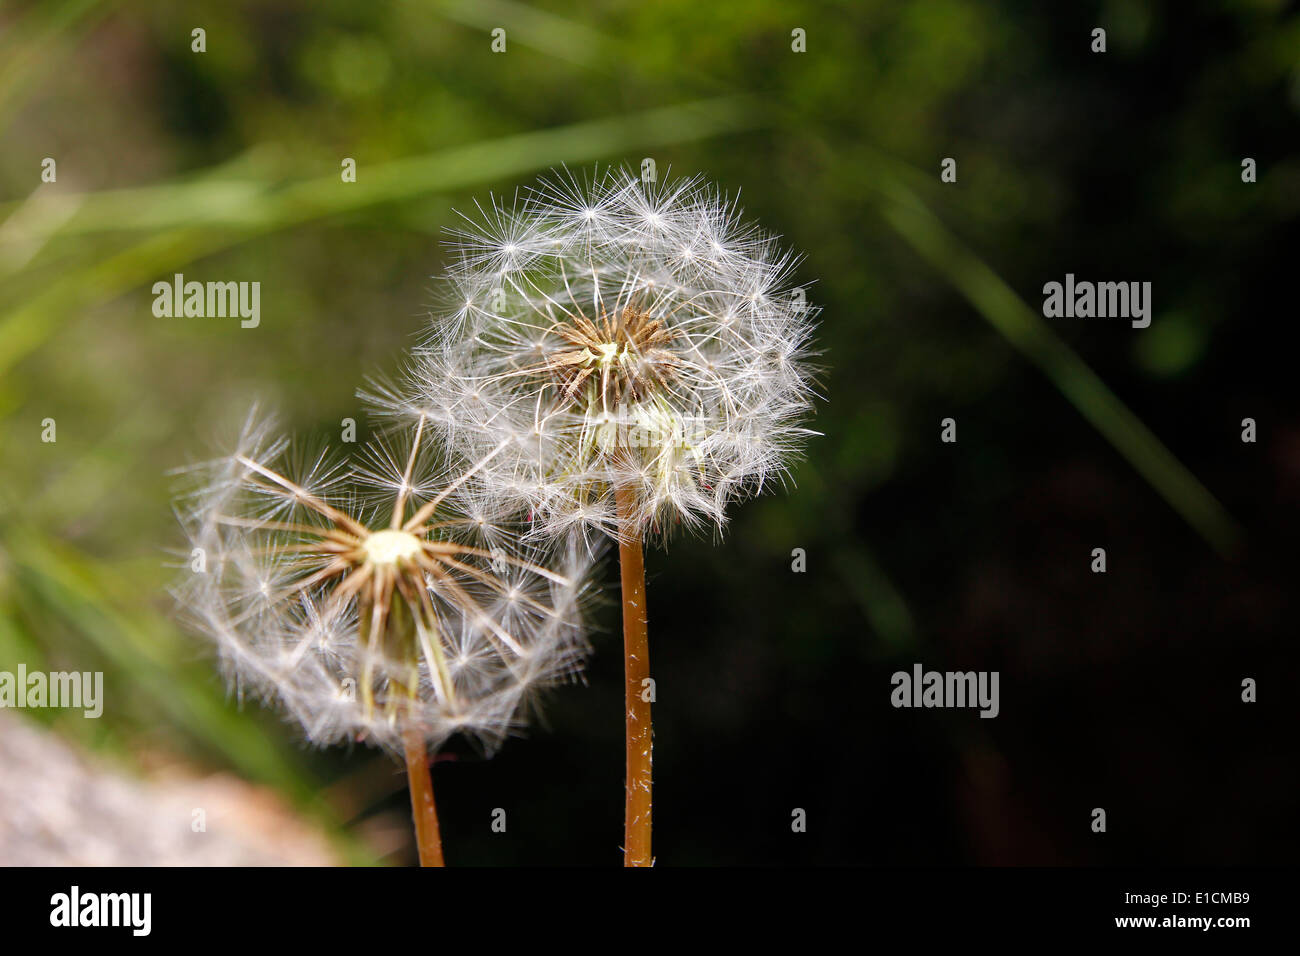 Two dandelions at spring, close-up Stock Photo